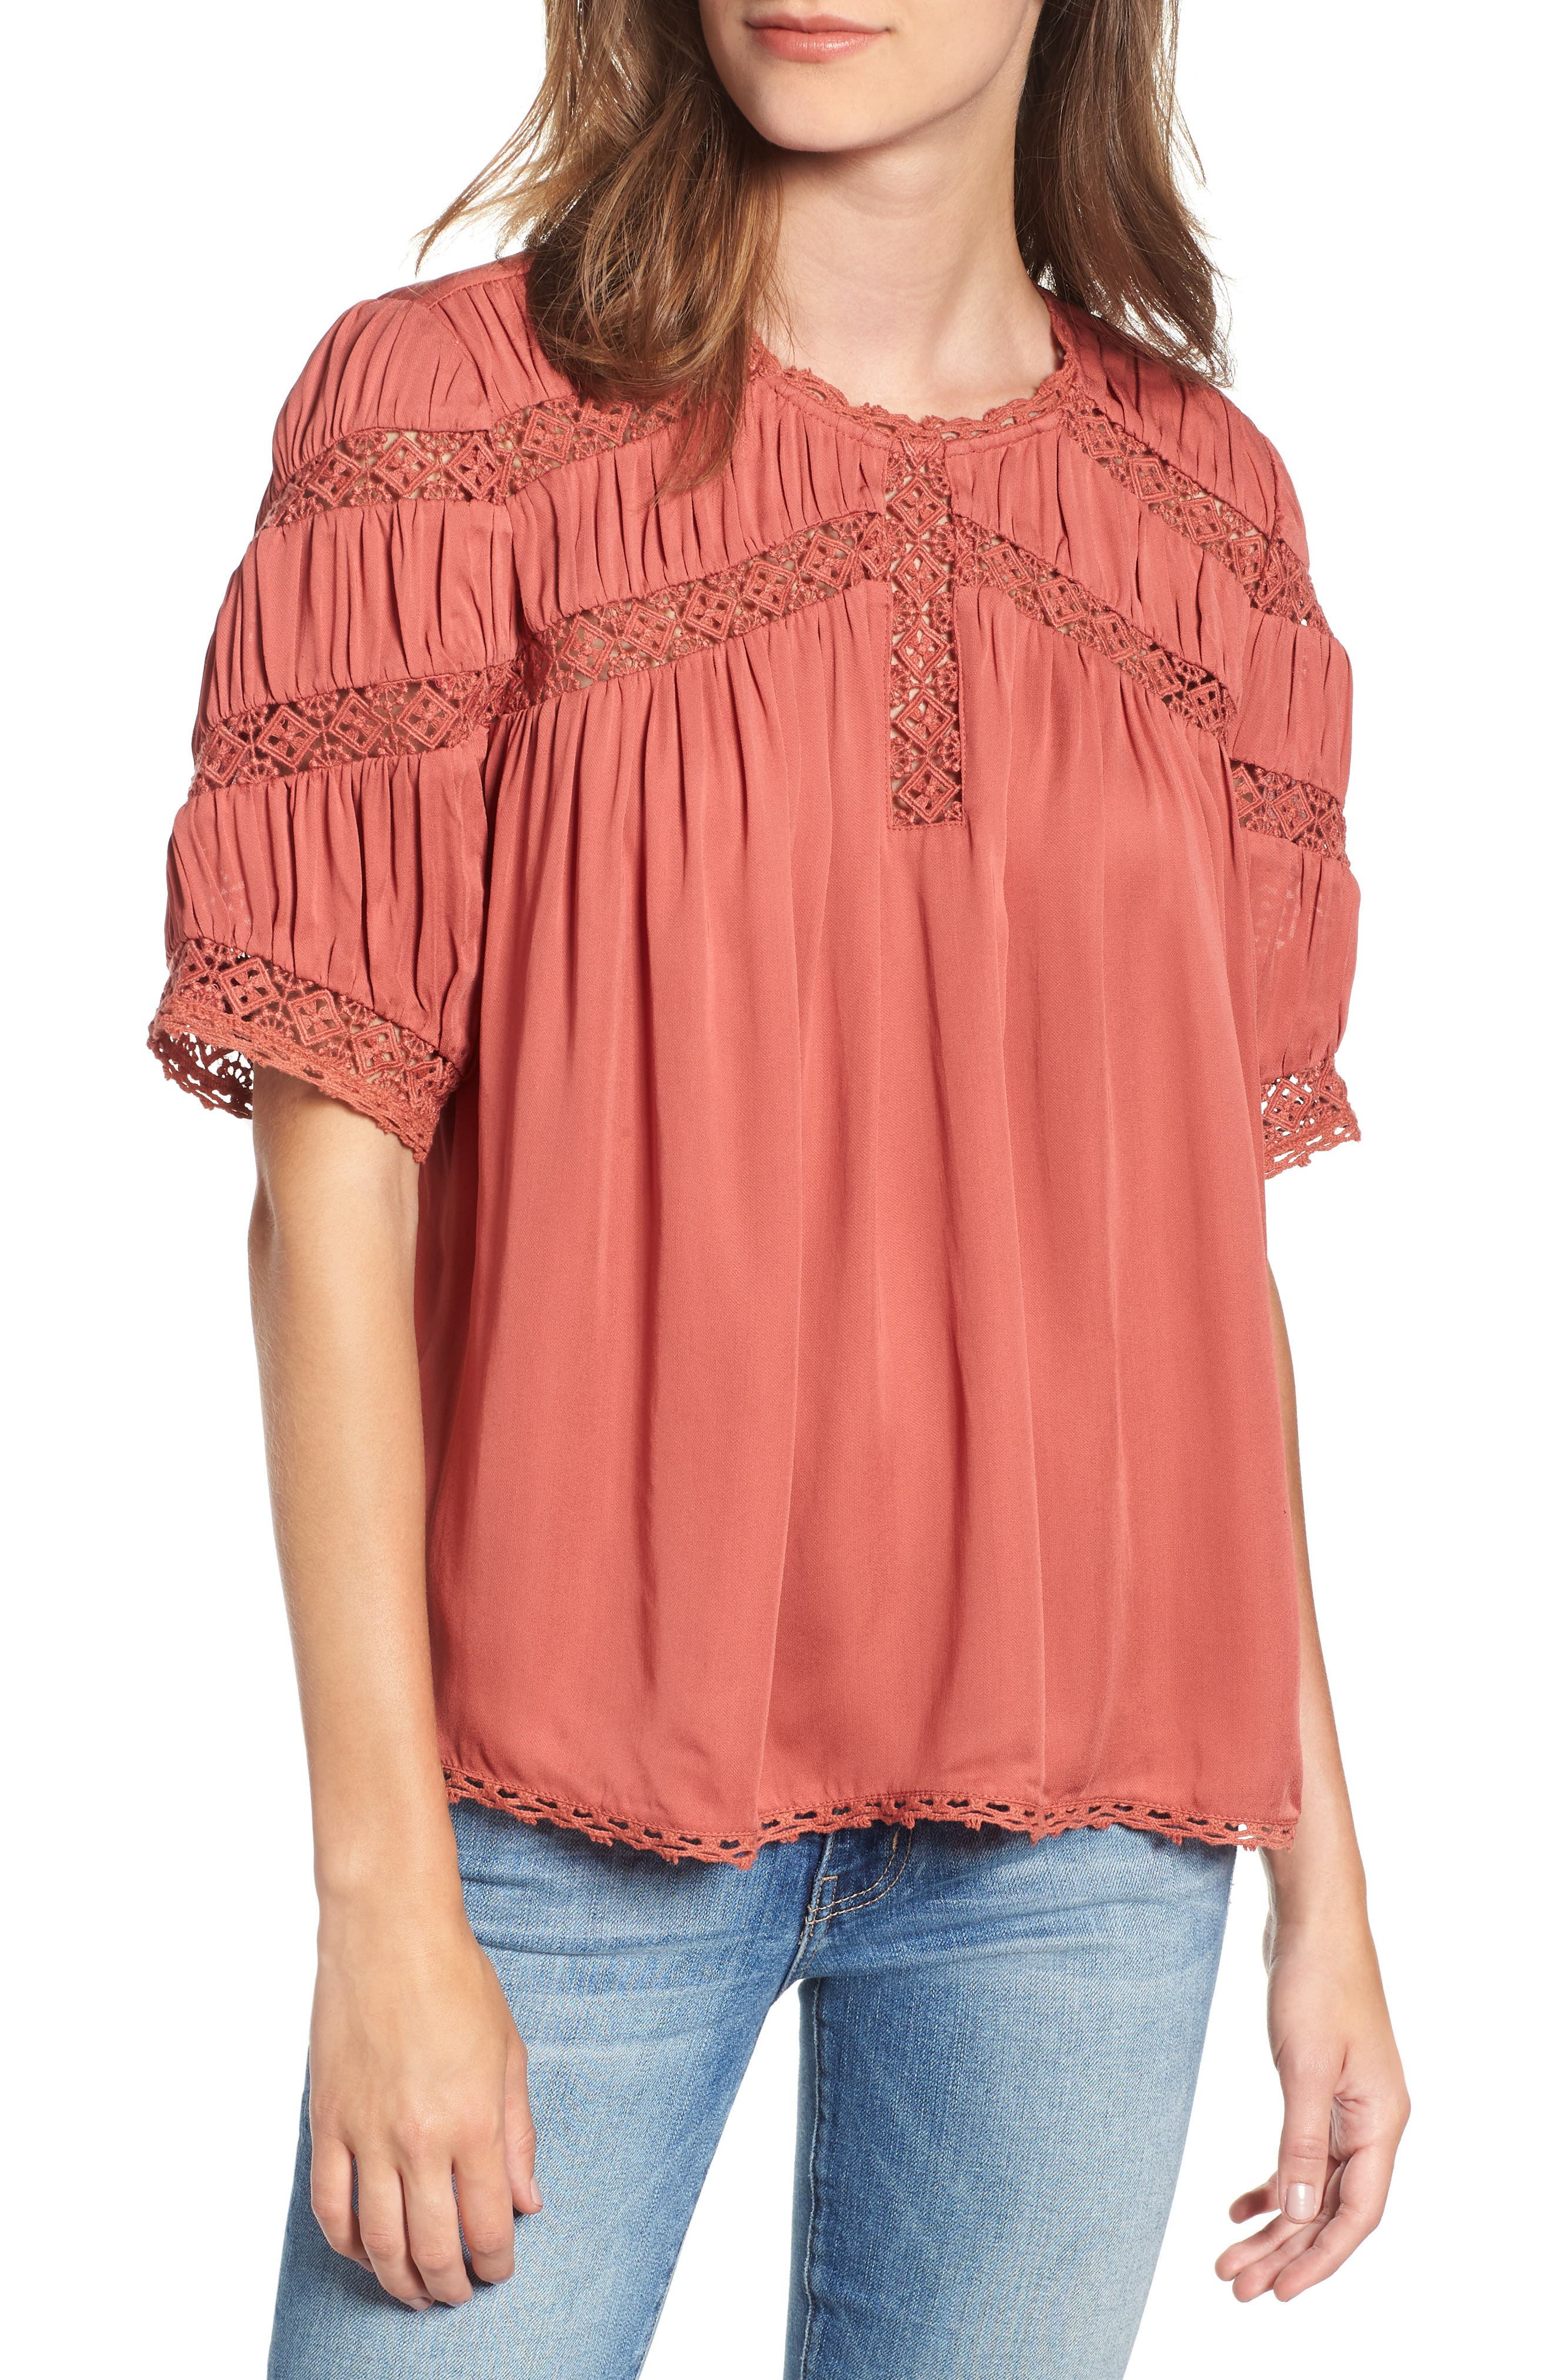 HINGE Gathered Lace Top, Main, color, 660